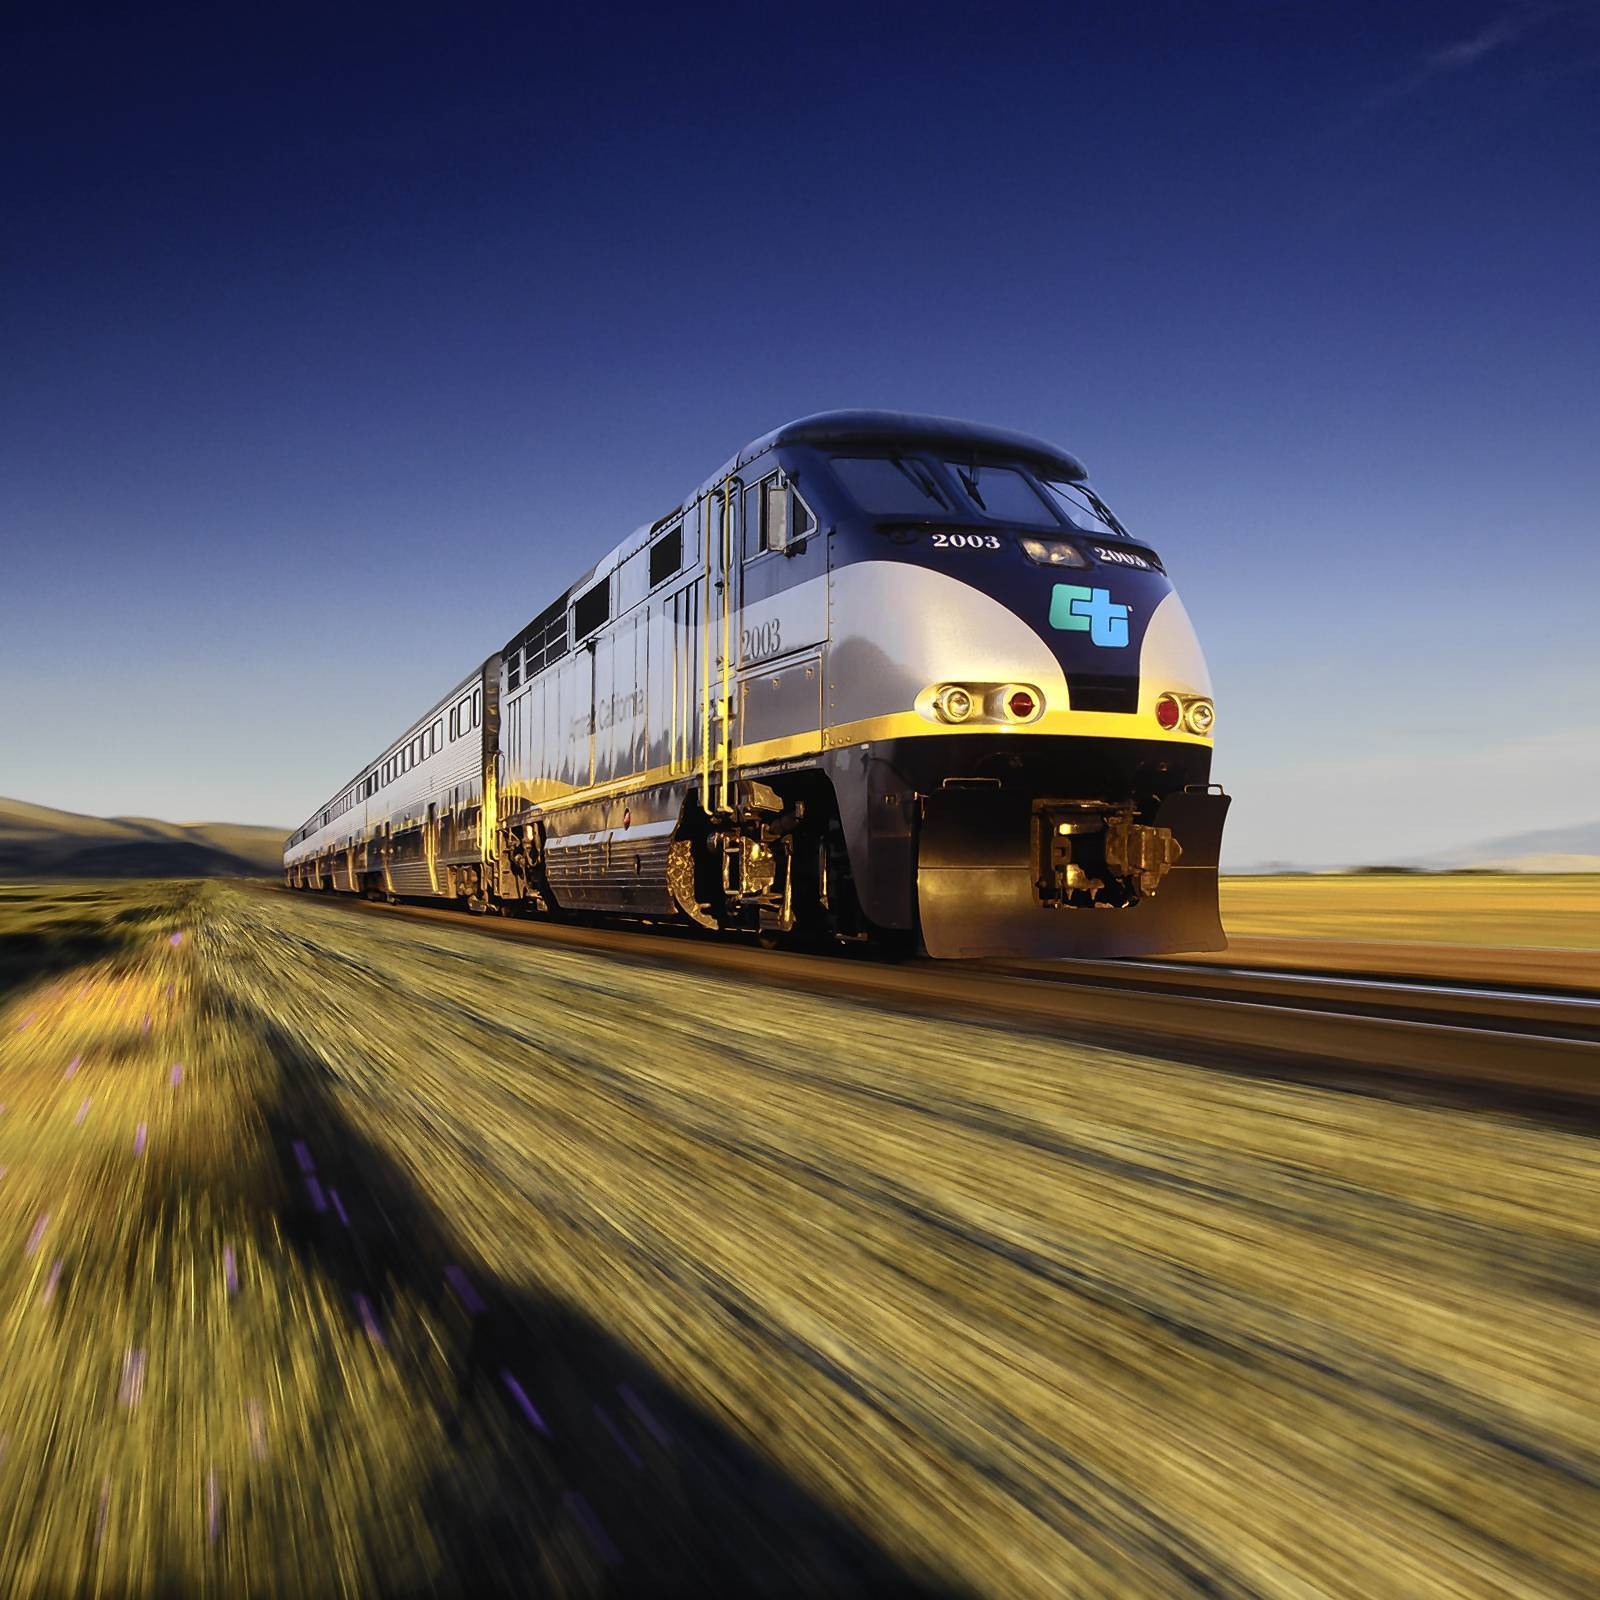 Take a train to San Joaquin Valley food fests